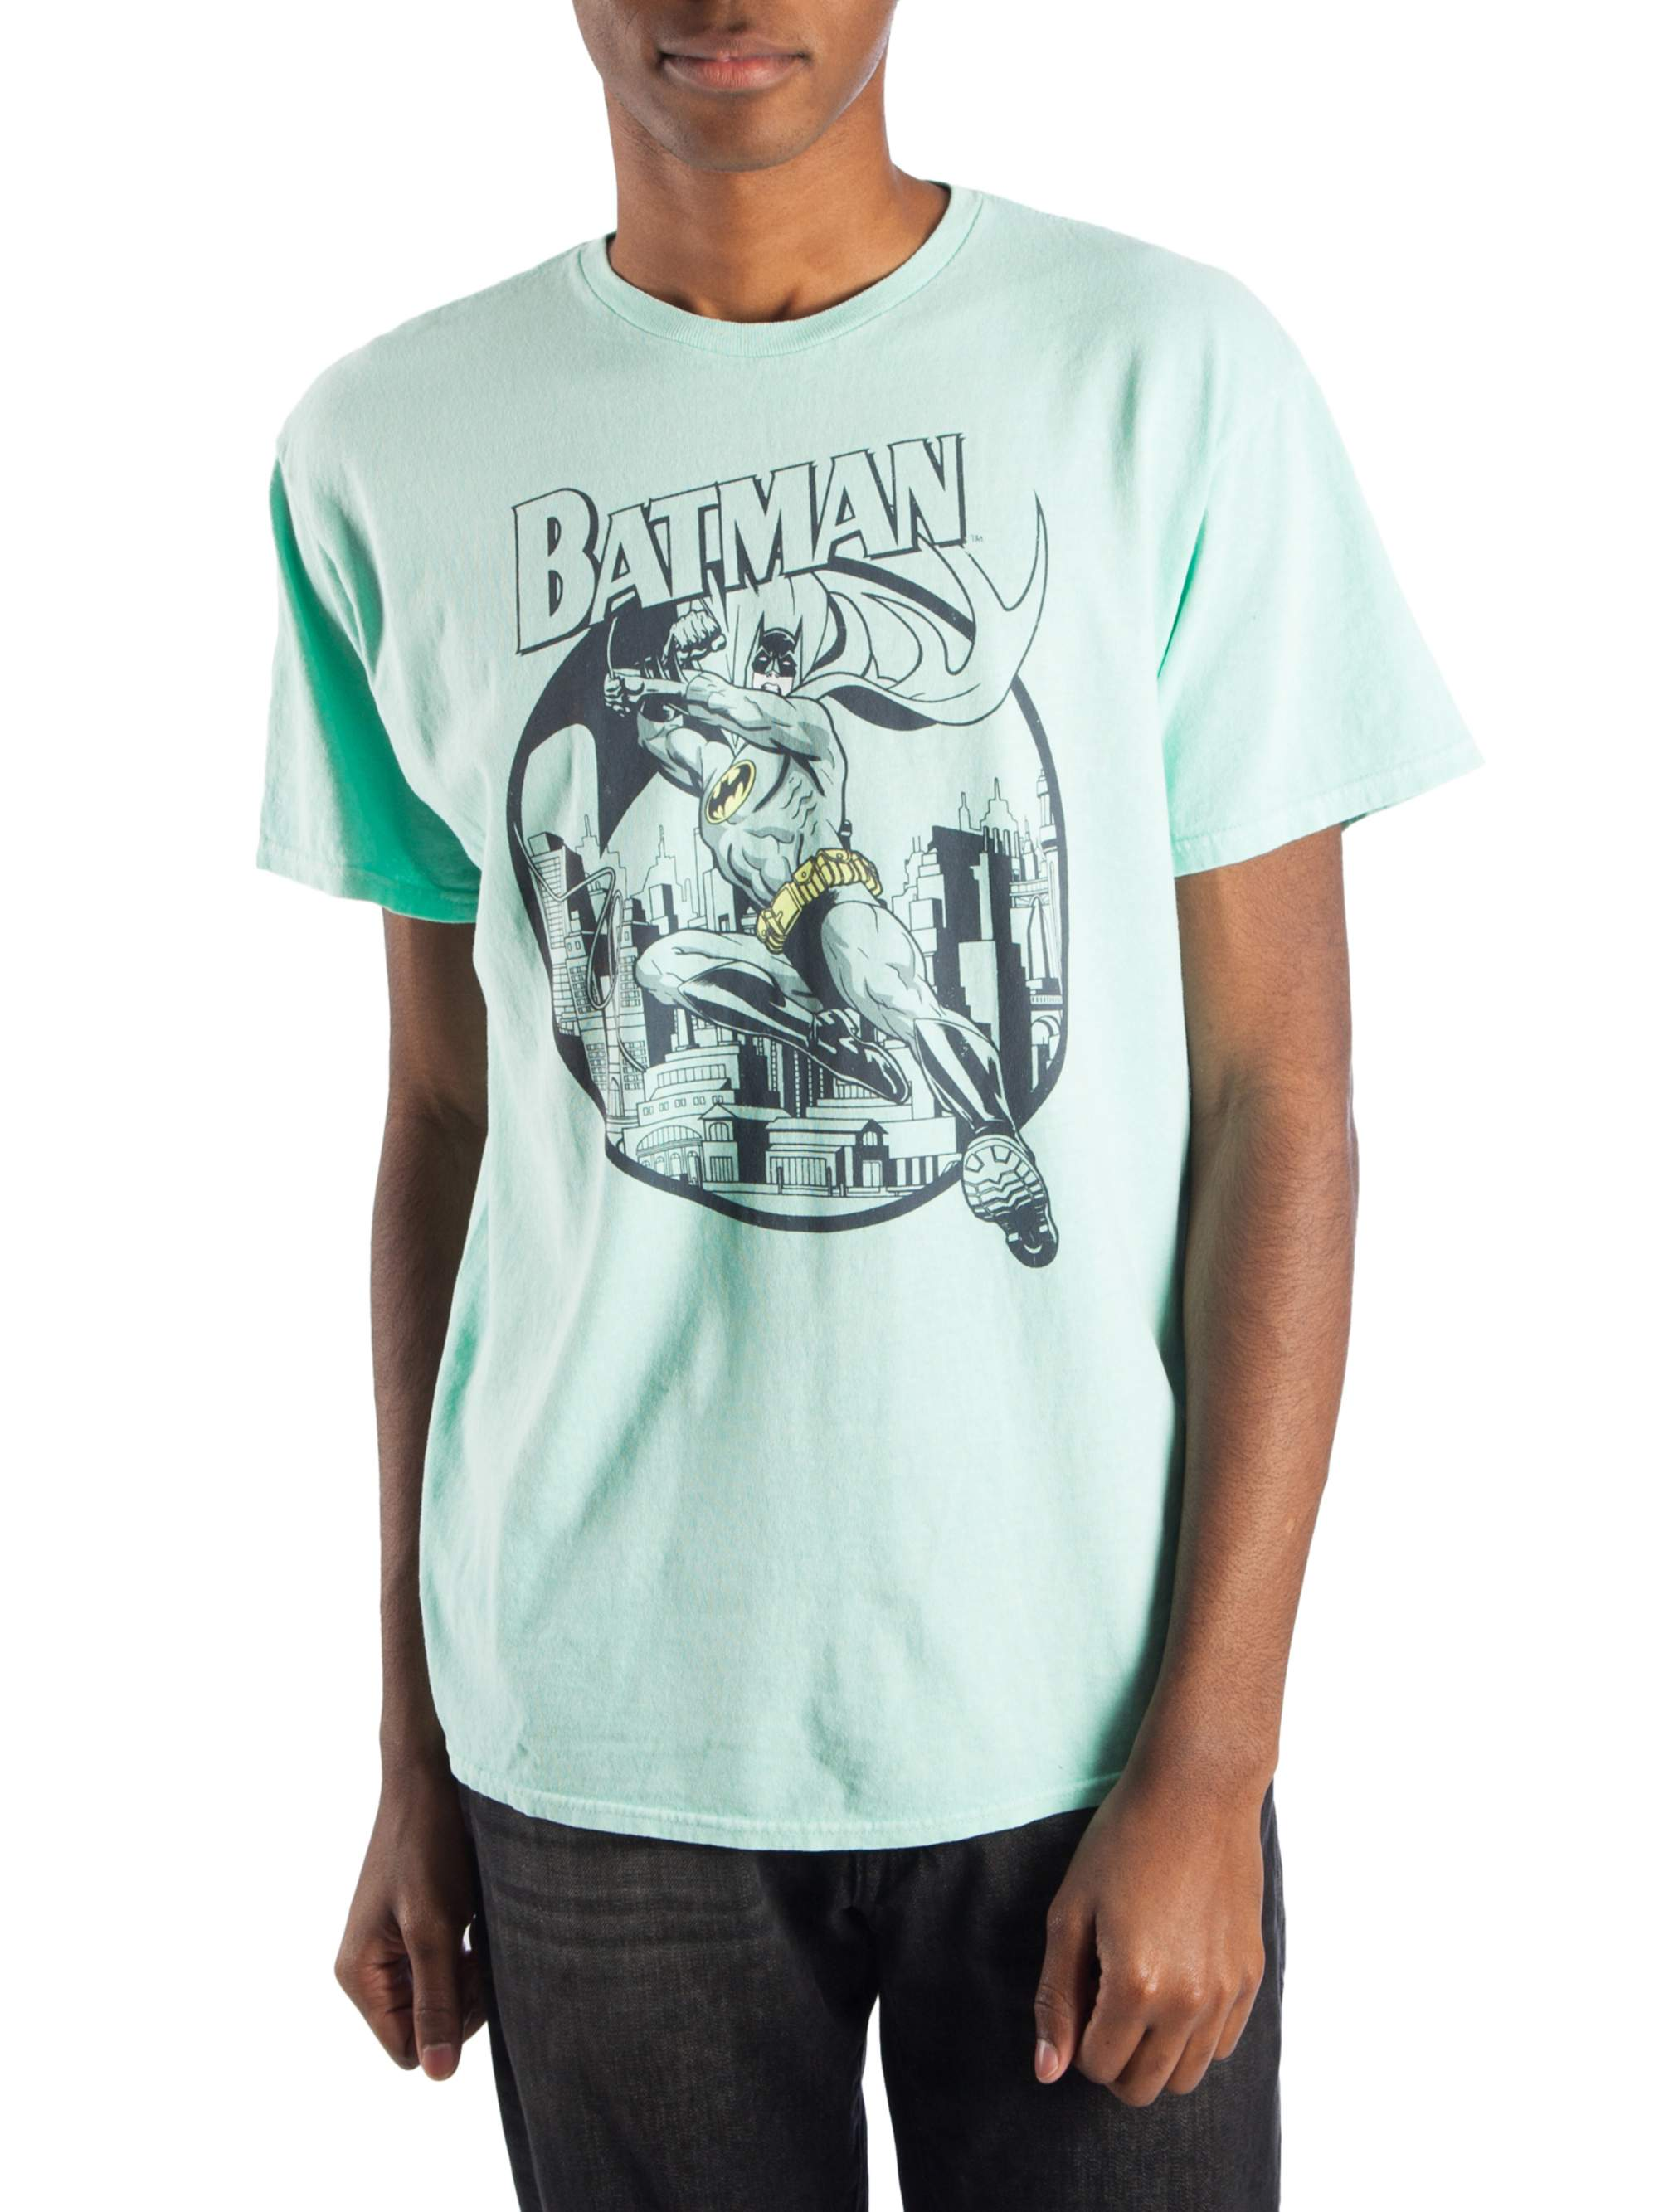 Batman Men's Vintage Graphic T-Shirt